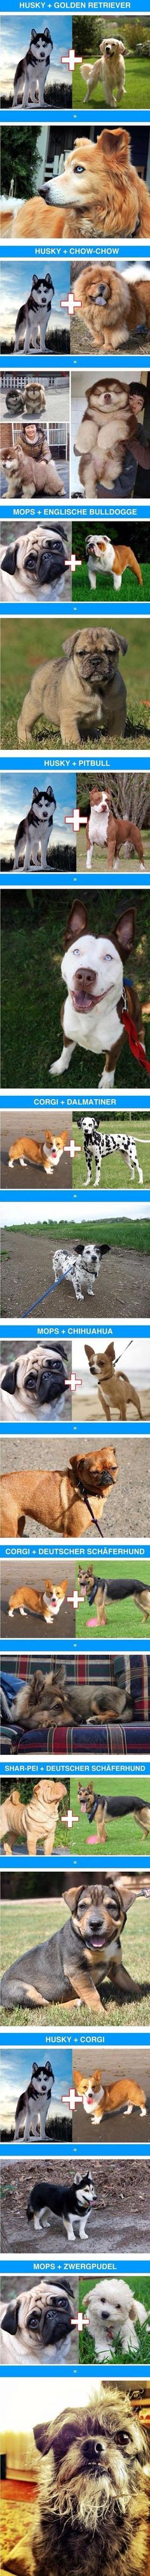 Cool dog cross breed combinations « Humor « ImgLuLz – Funny Pics and More